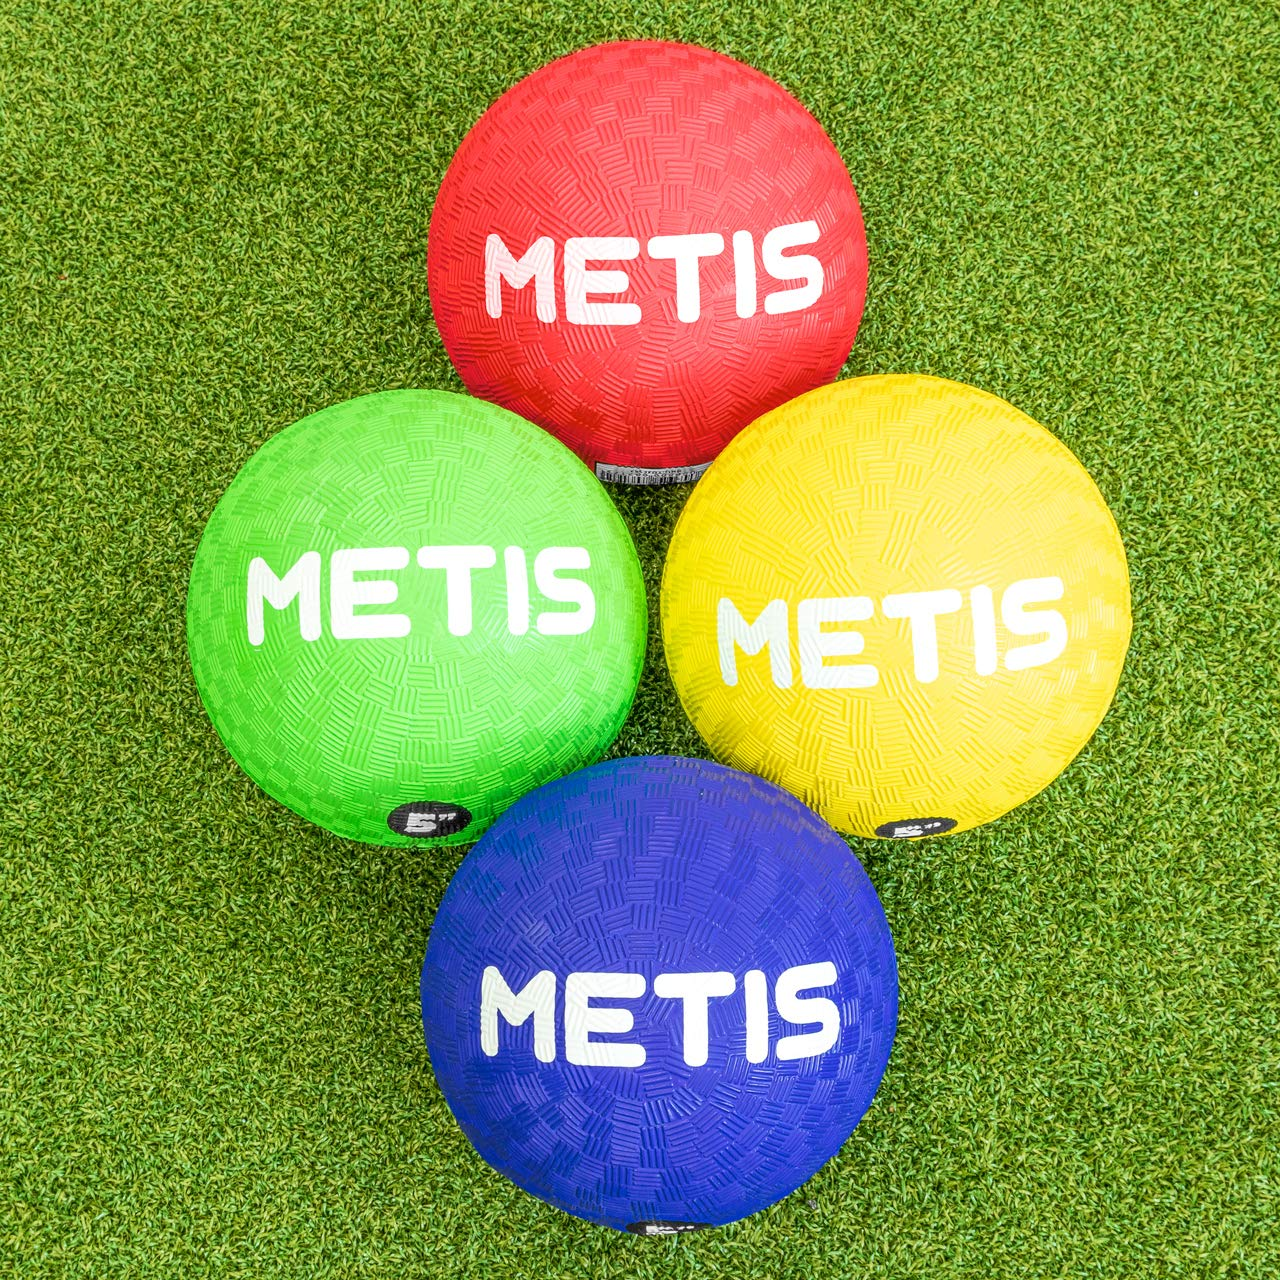 METIS Playground Ball (Packs of 4, 8 or 12) | Soft Anti-Sting Rubber Bouncy Football | Multiple Colour Option Small Outdoor Play Balls - Kids & Toddler Sports Balls (Pack of 8, Large (8.5in))